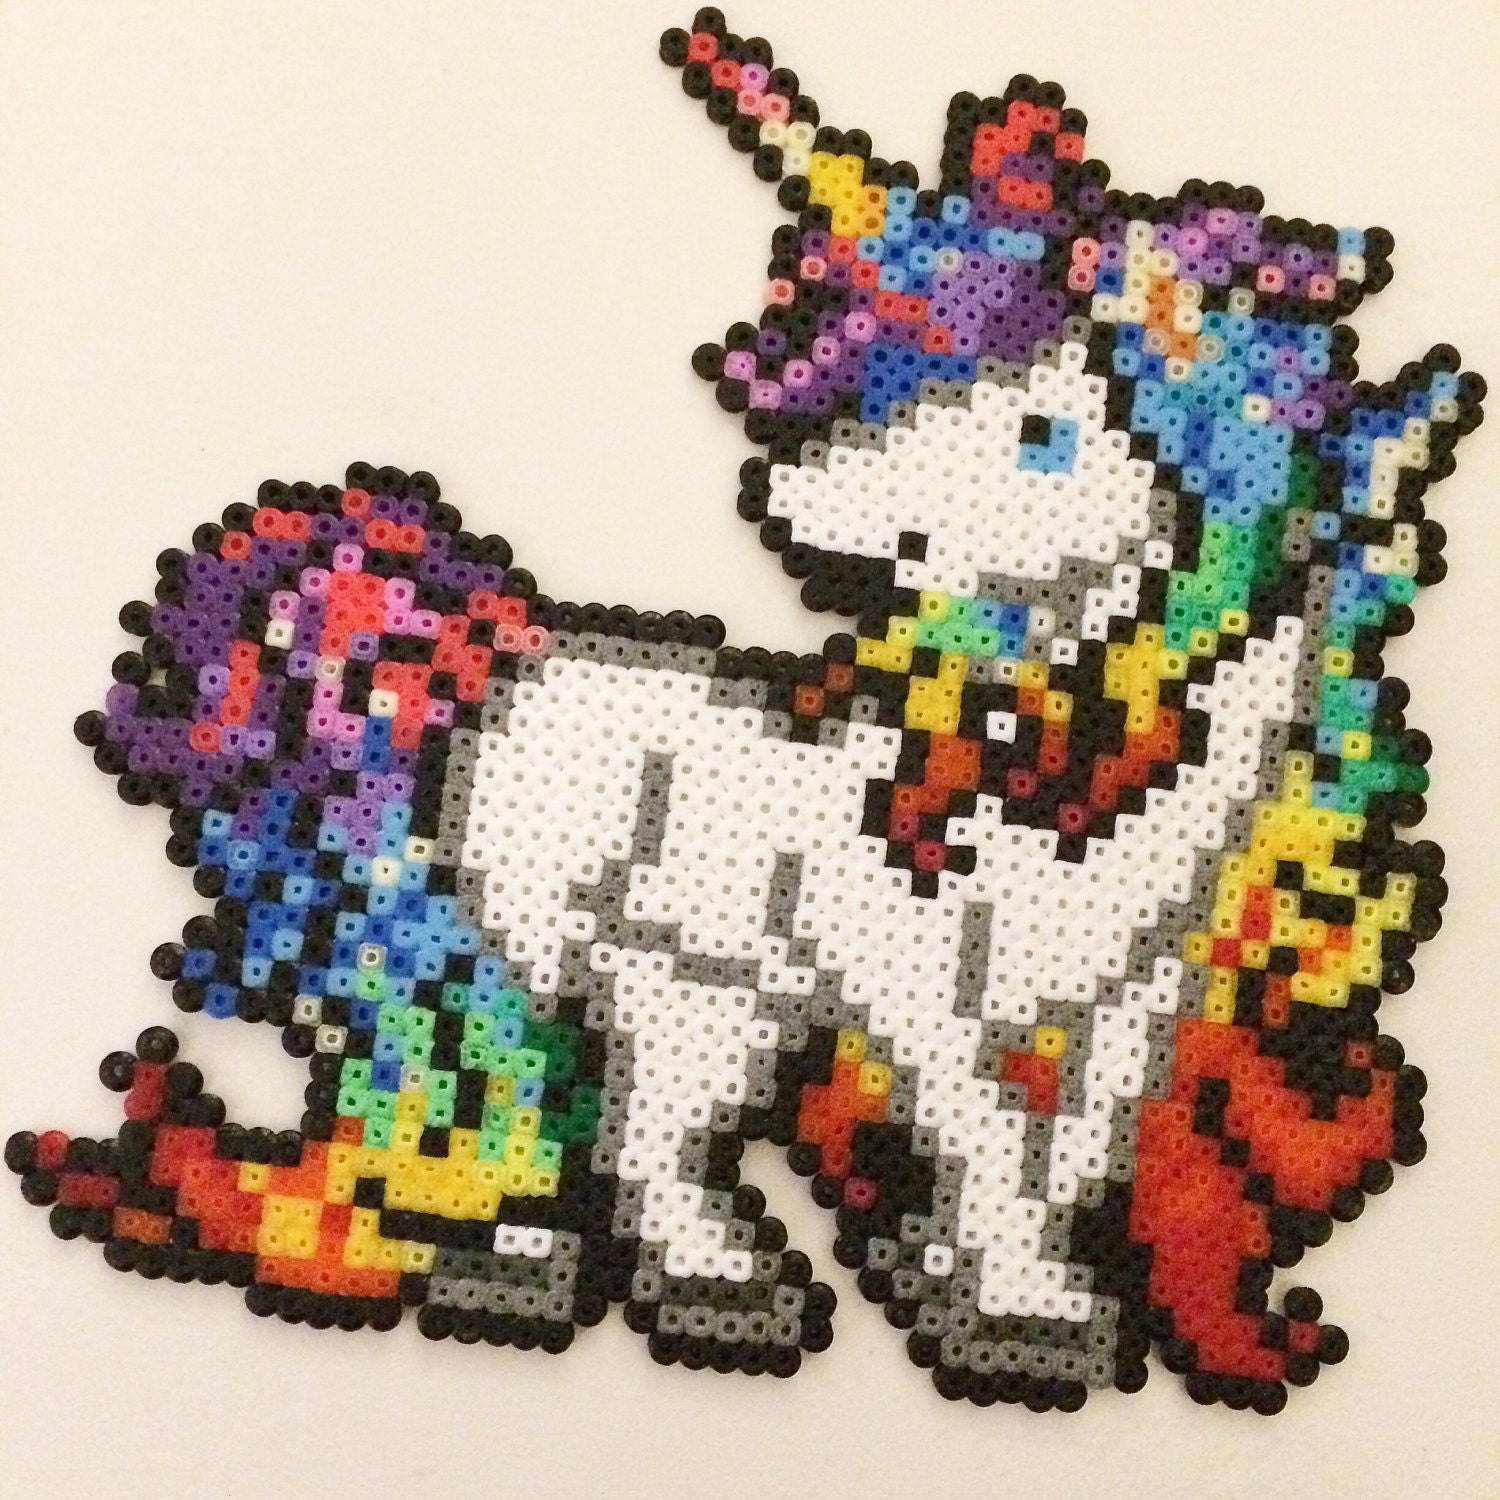 licorne perle hama mini perler pixel art cr ation aimant. Black Bedroom Furniture Sets. Home Design Ideas